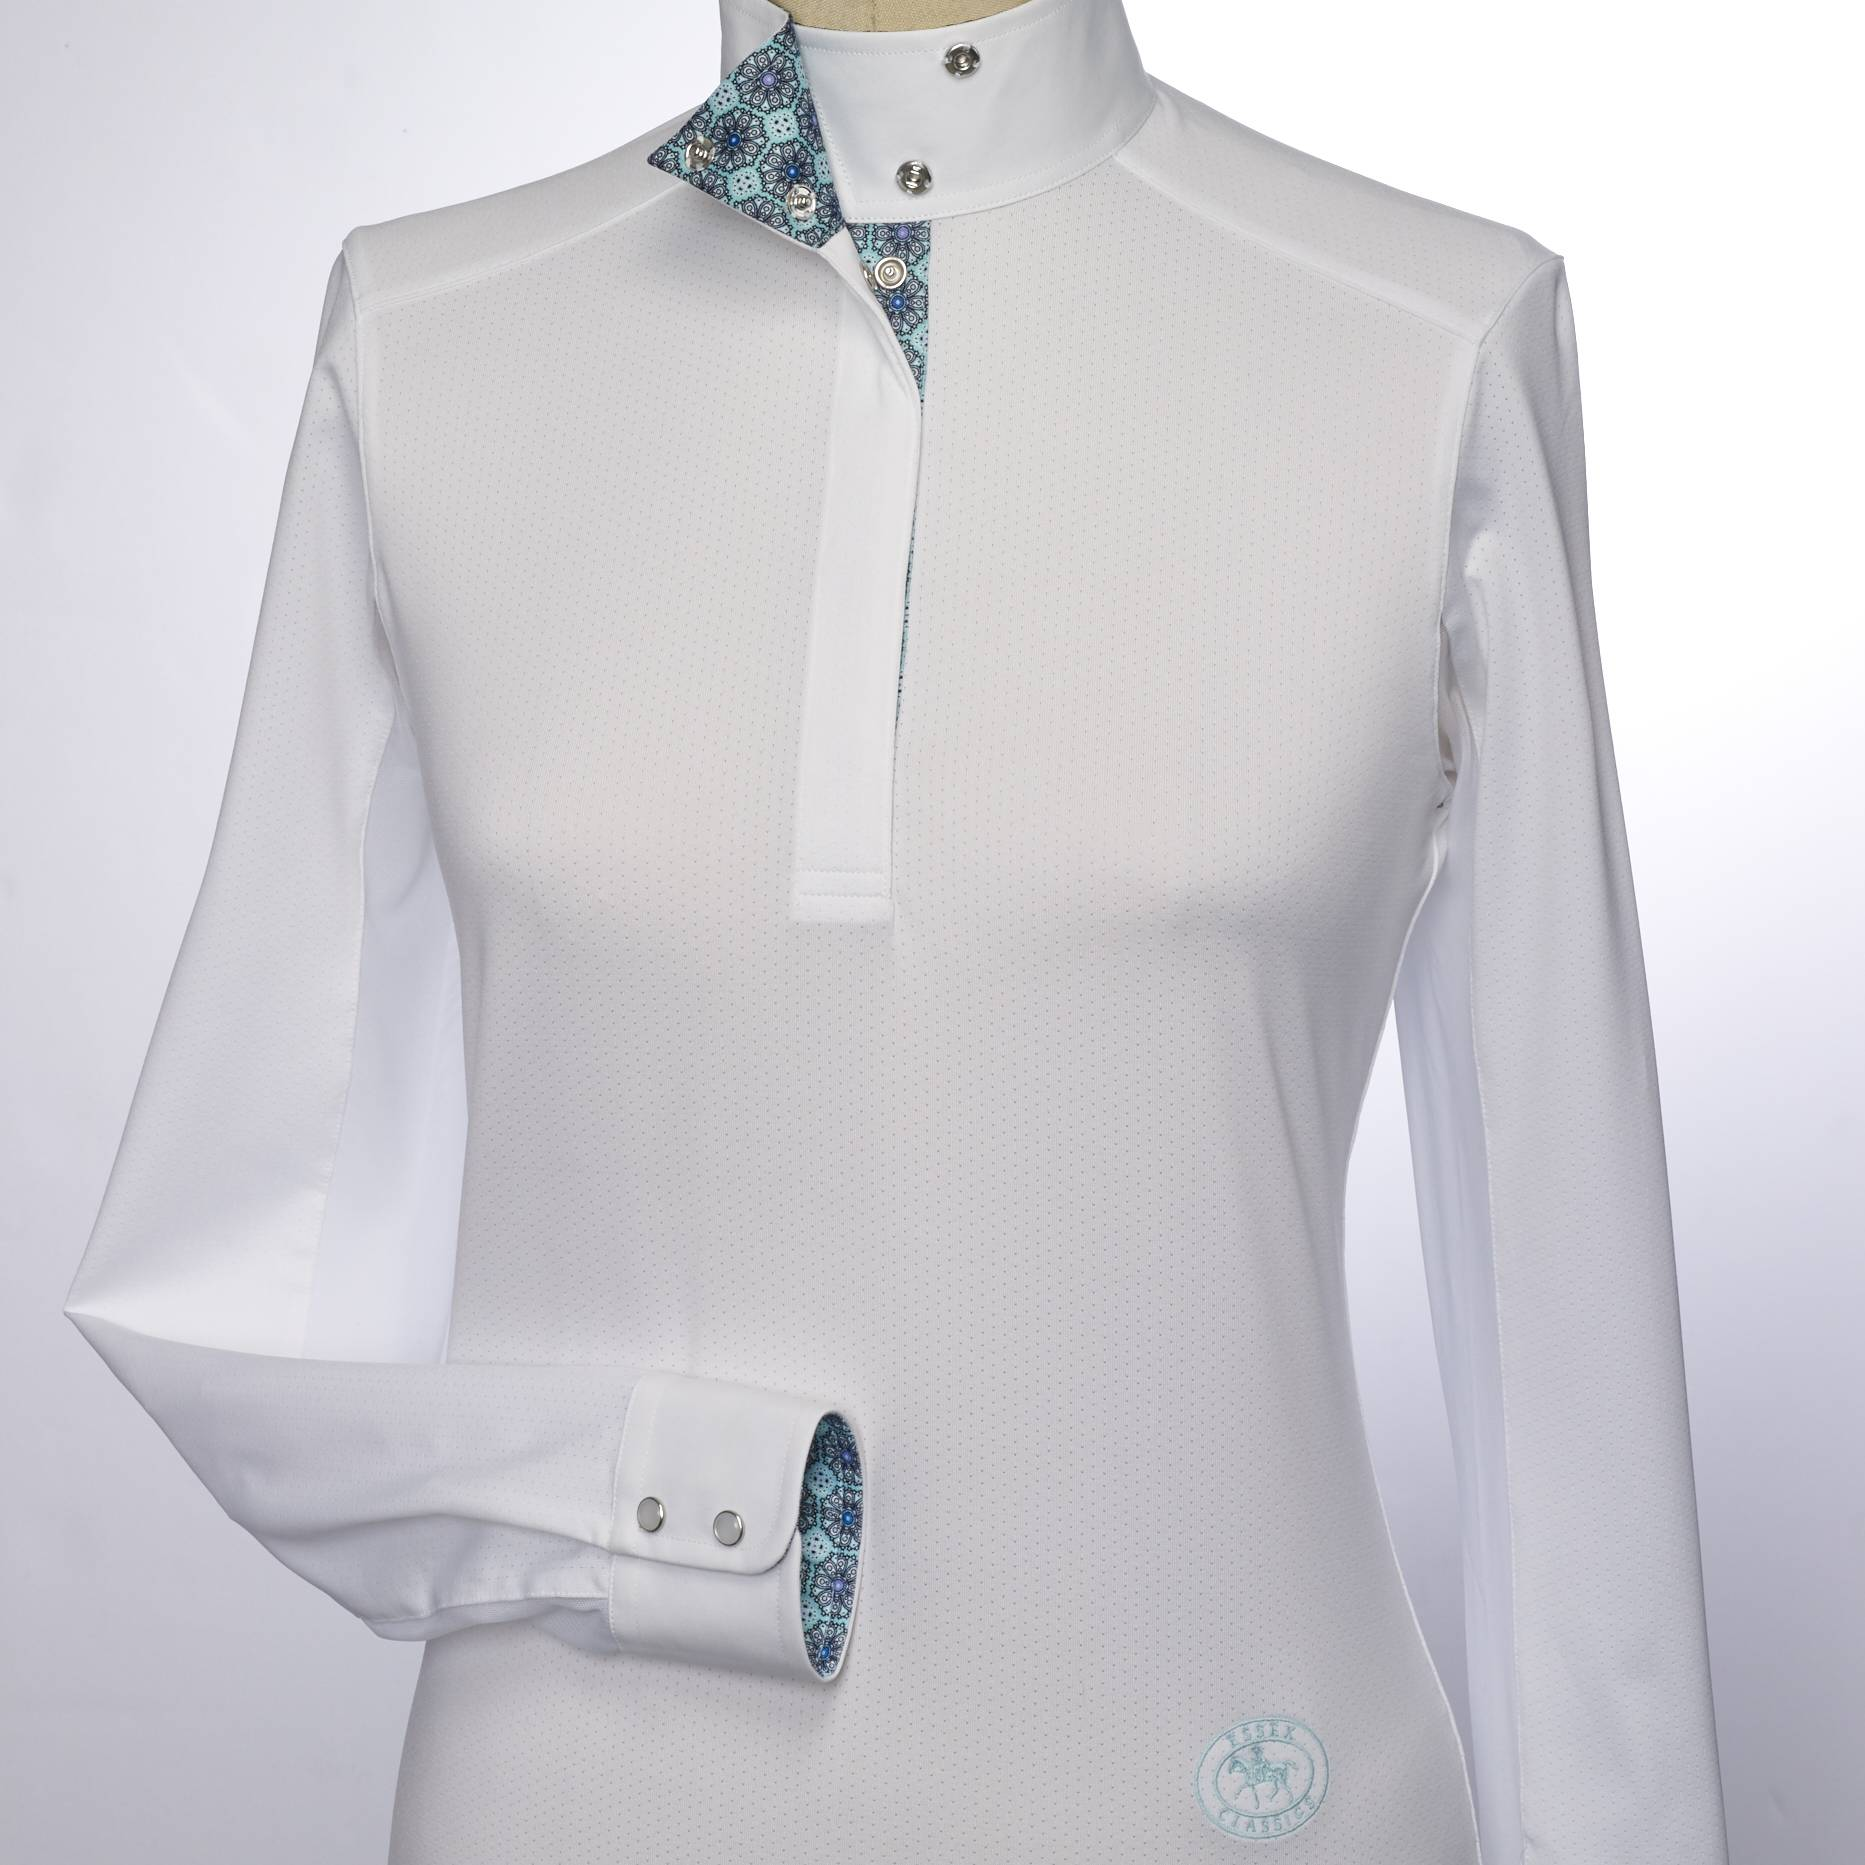 Essex Classics Flora Talent Yarn Wrap Collar Shirt - Ladies